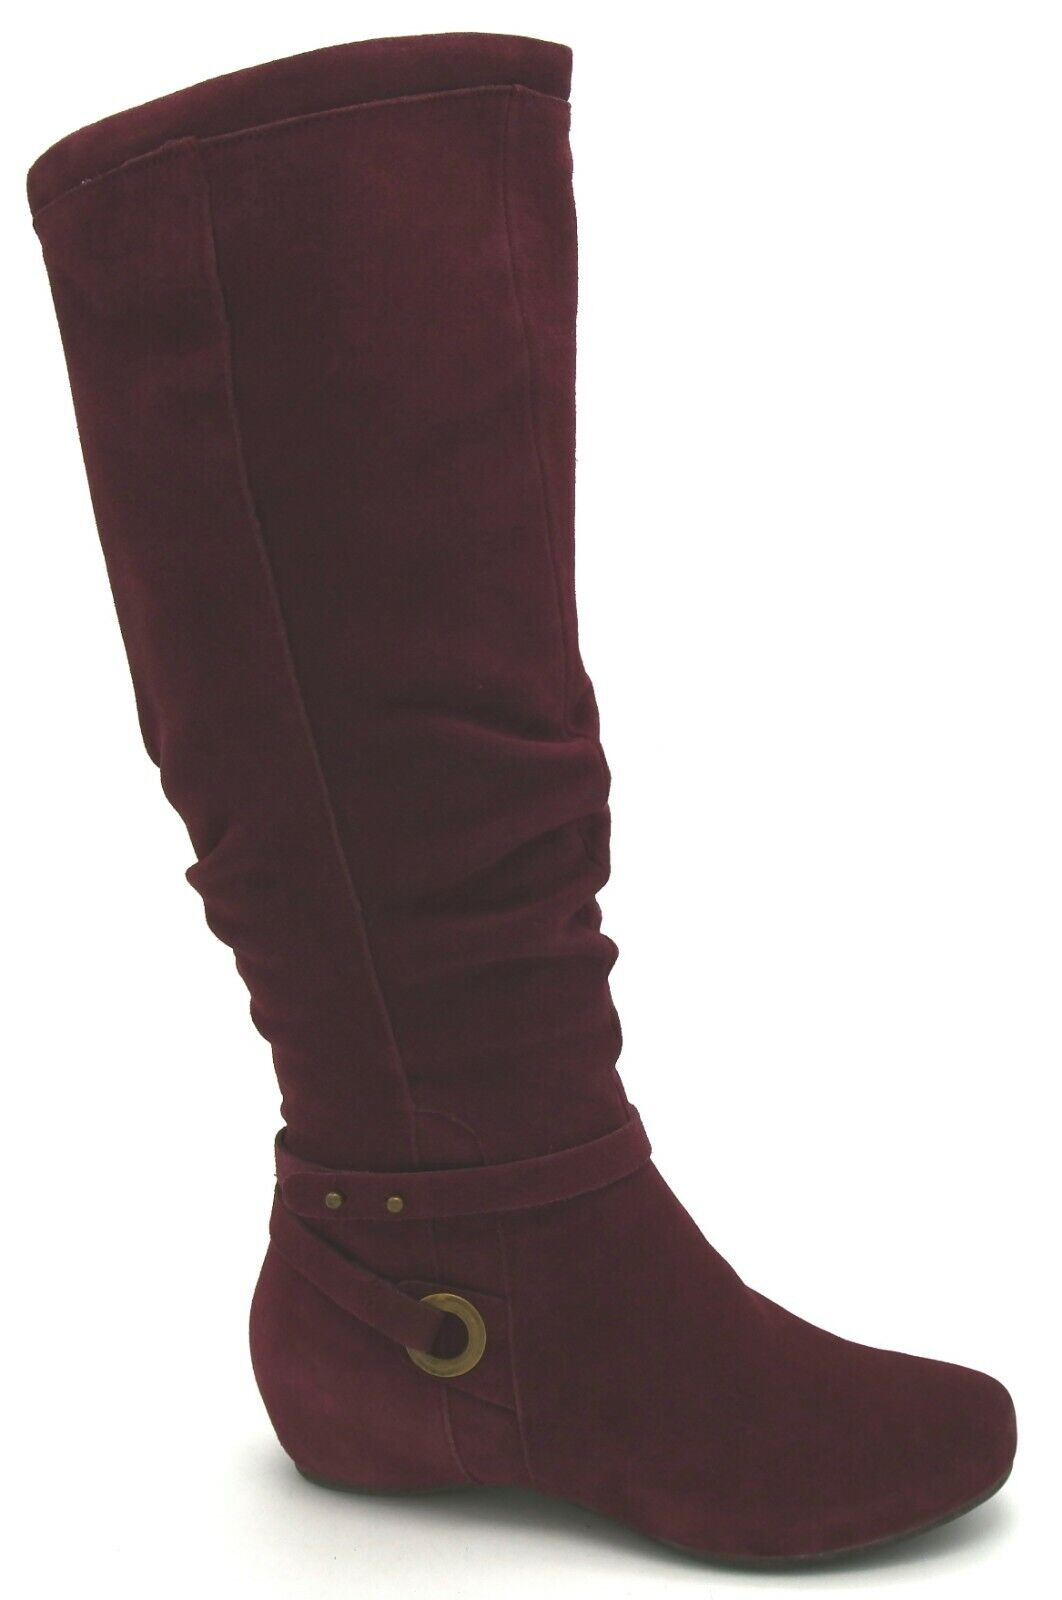 J7951 New Women's Pure Sole Smitten Burgundy Suede Boot 8.5 M